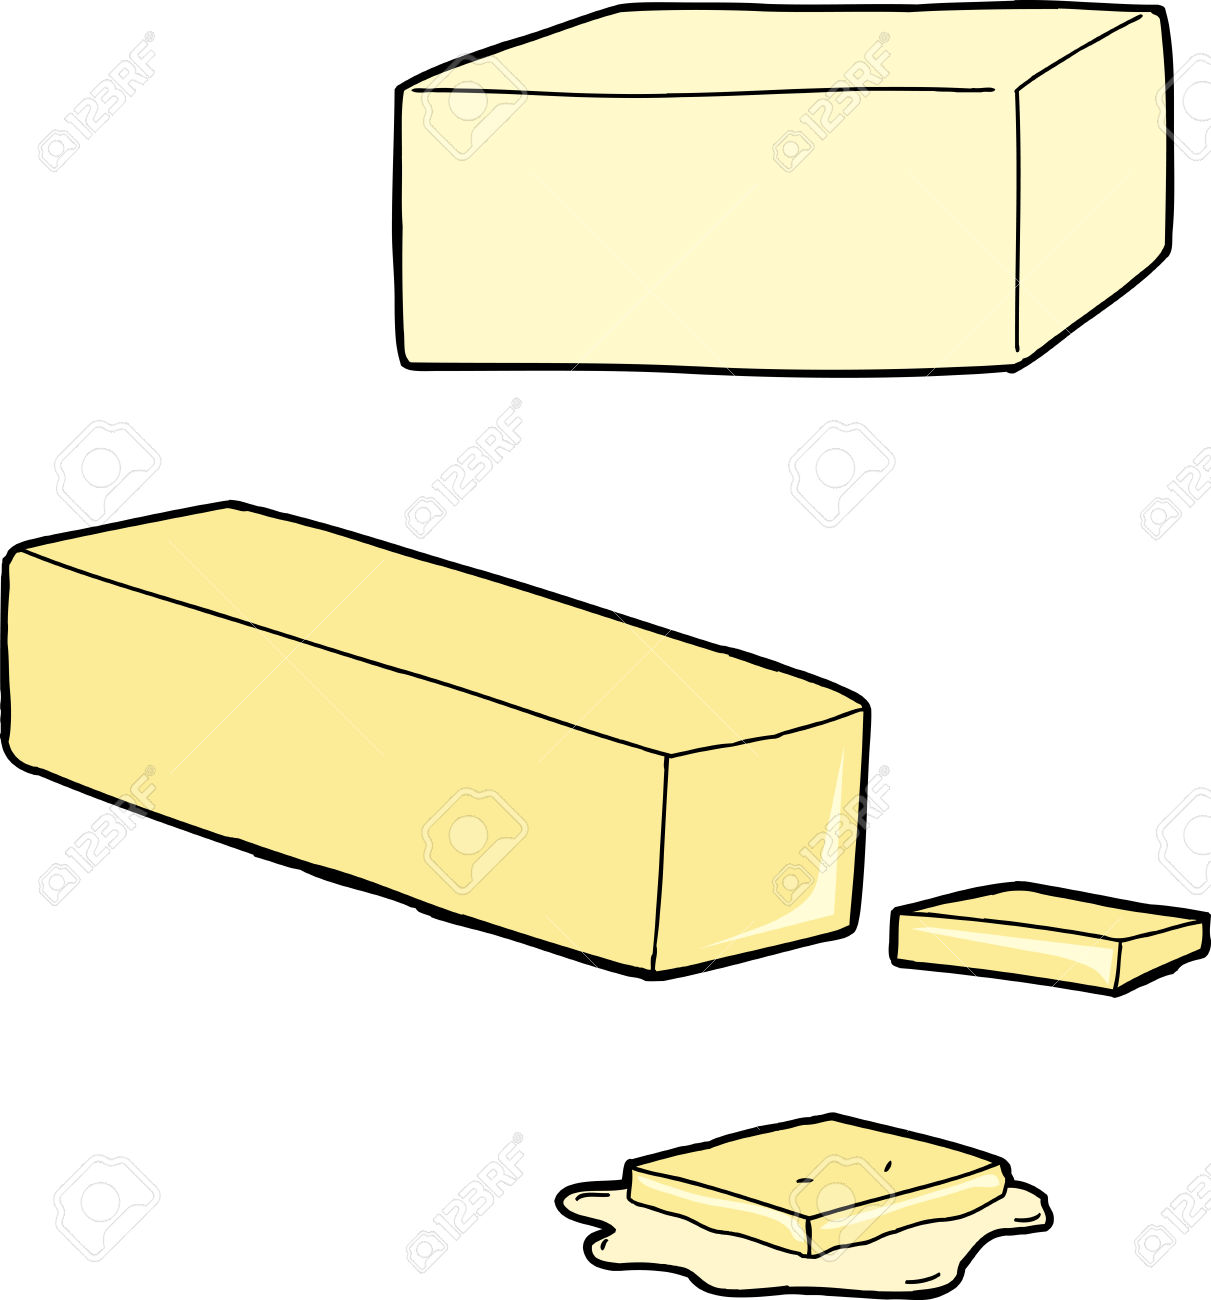 Butter As A Stick, Cut And Melted On White Royalty Free Cliparts.